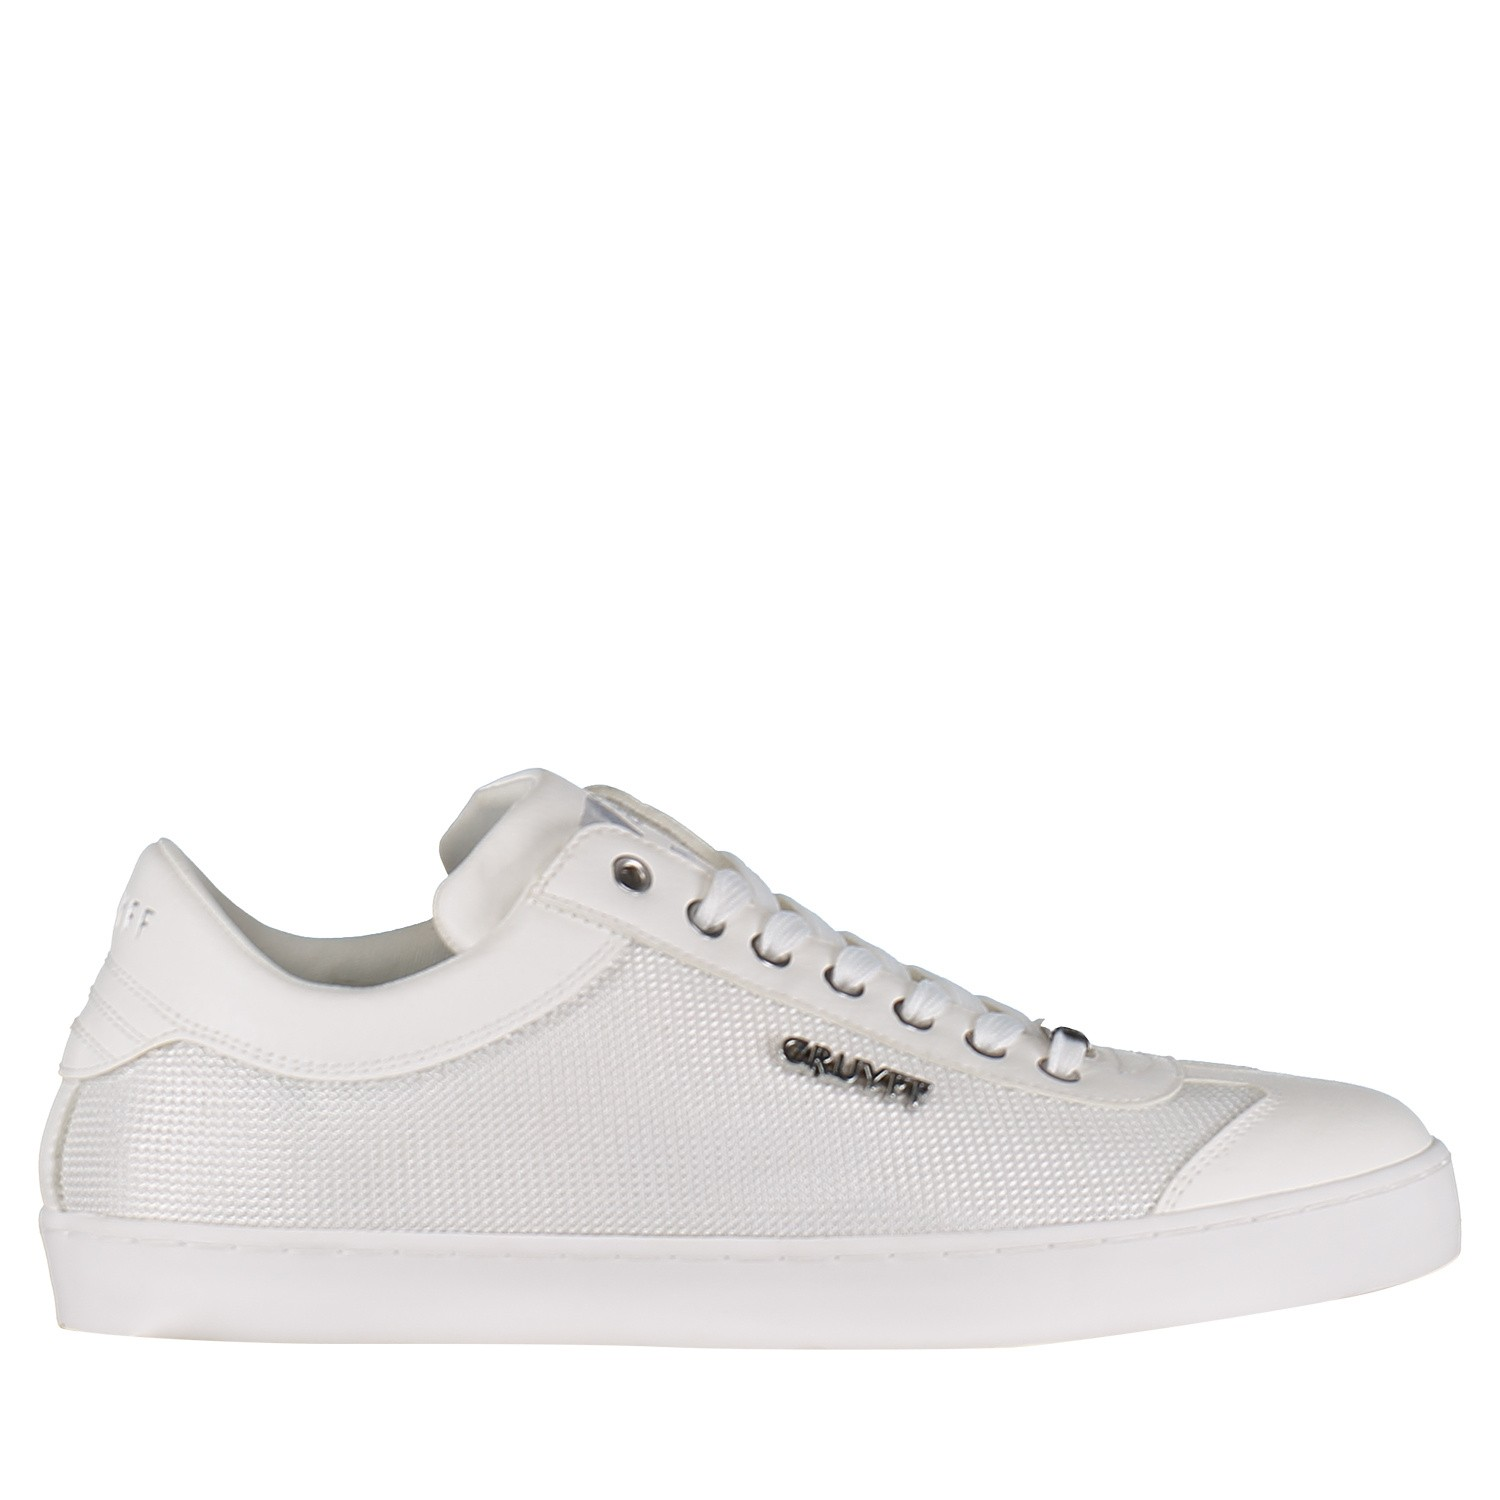 Picture of Cruyff CC5270191 mens sneakers white